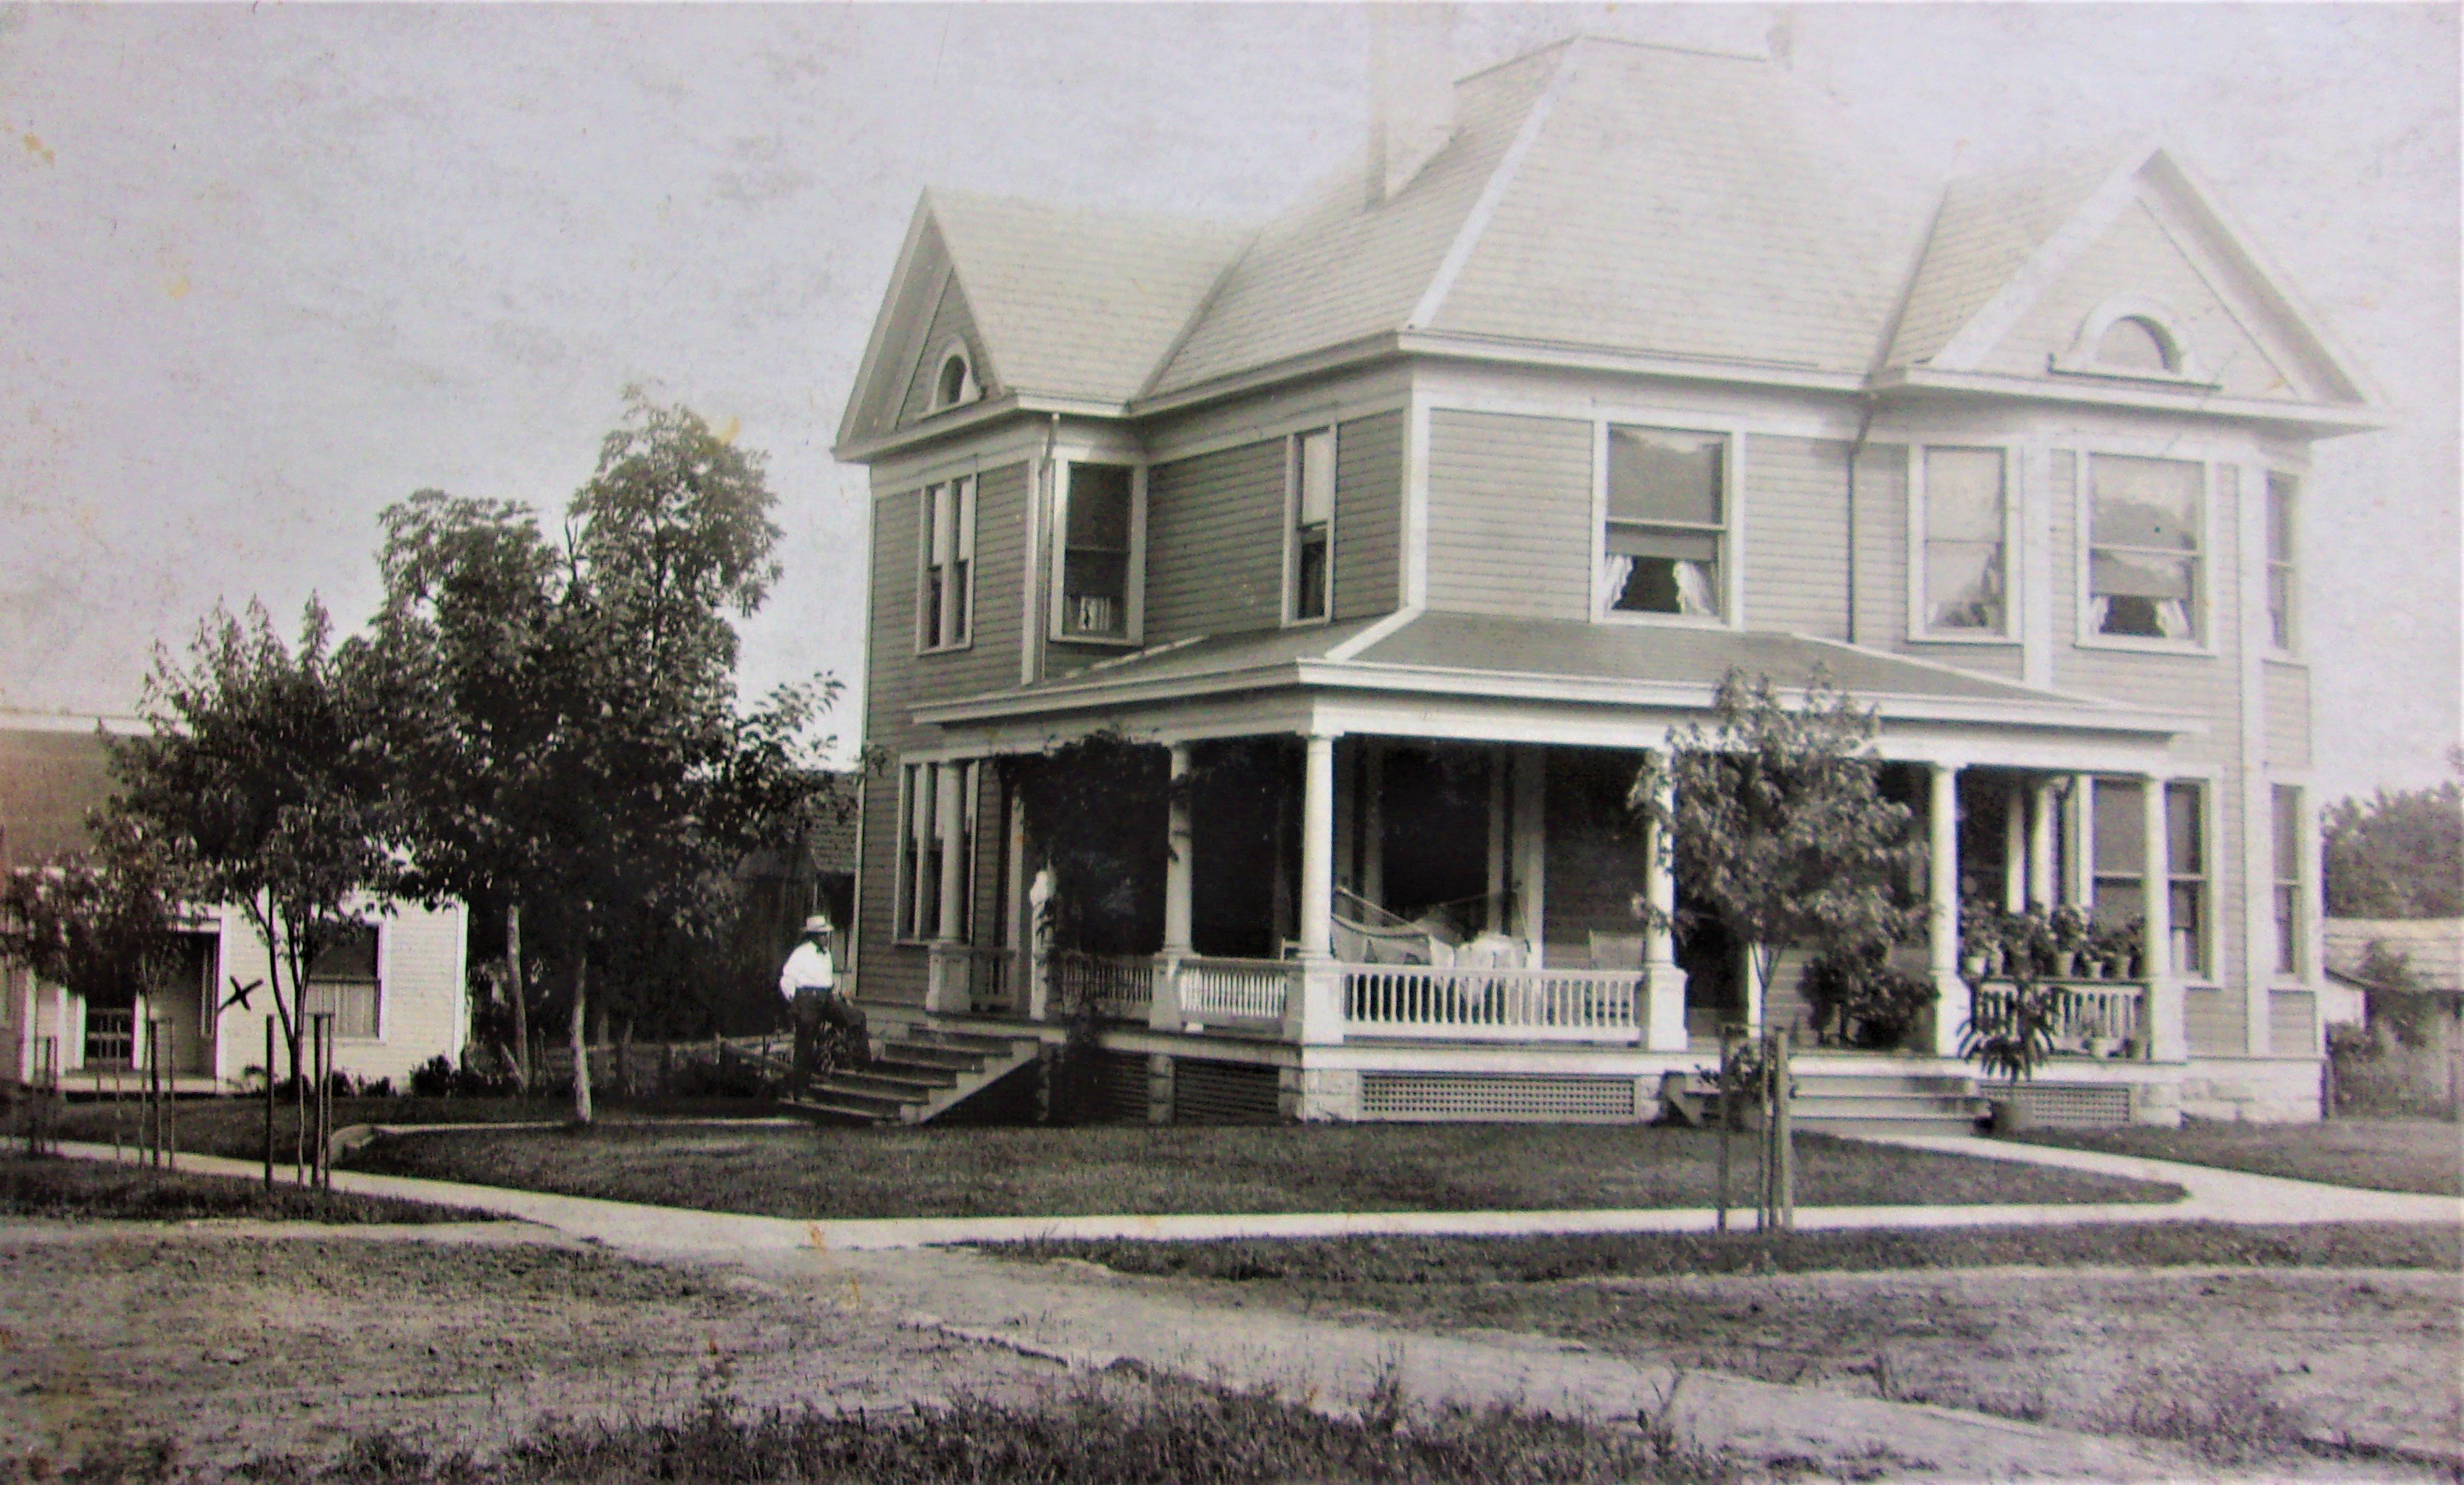 The Dr. Ira Lemley Residence in its heyday. The building to the left was Dr. Lemley's office where he practiced dentistry. It is now a private residence as well.